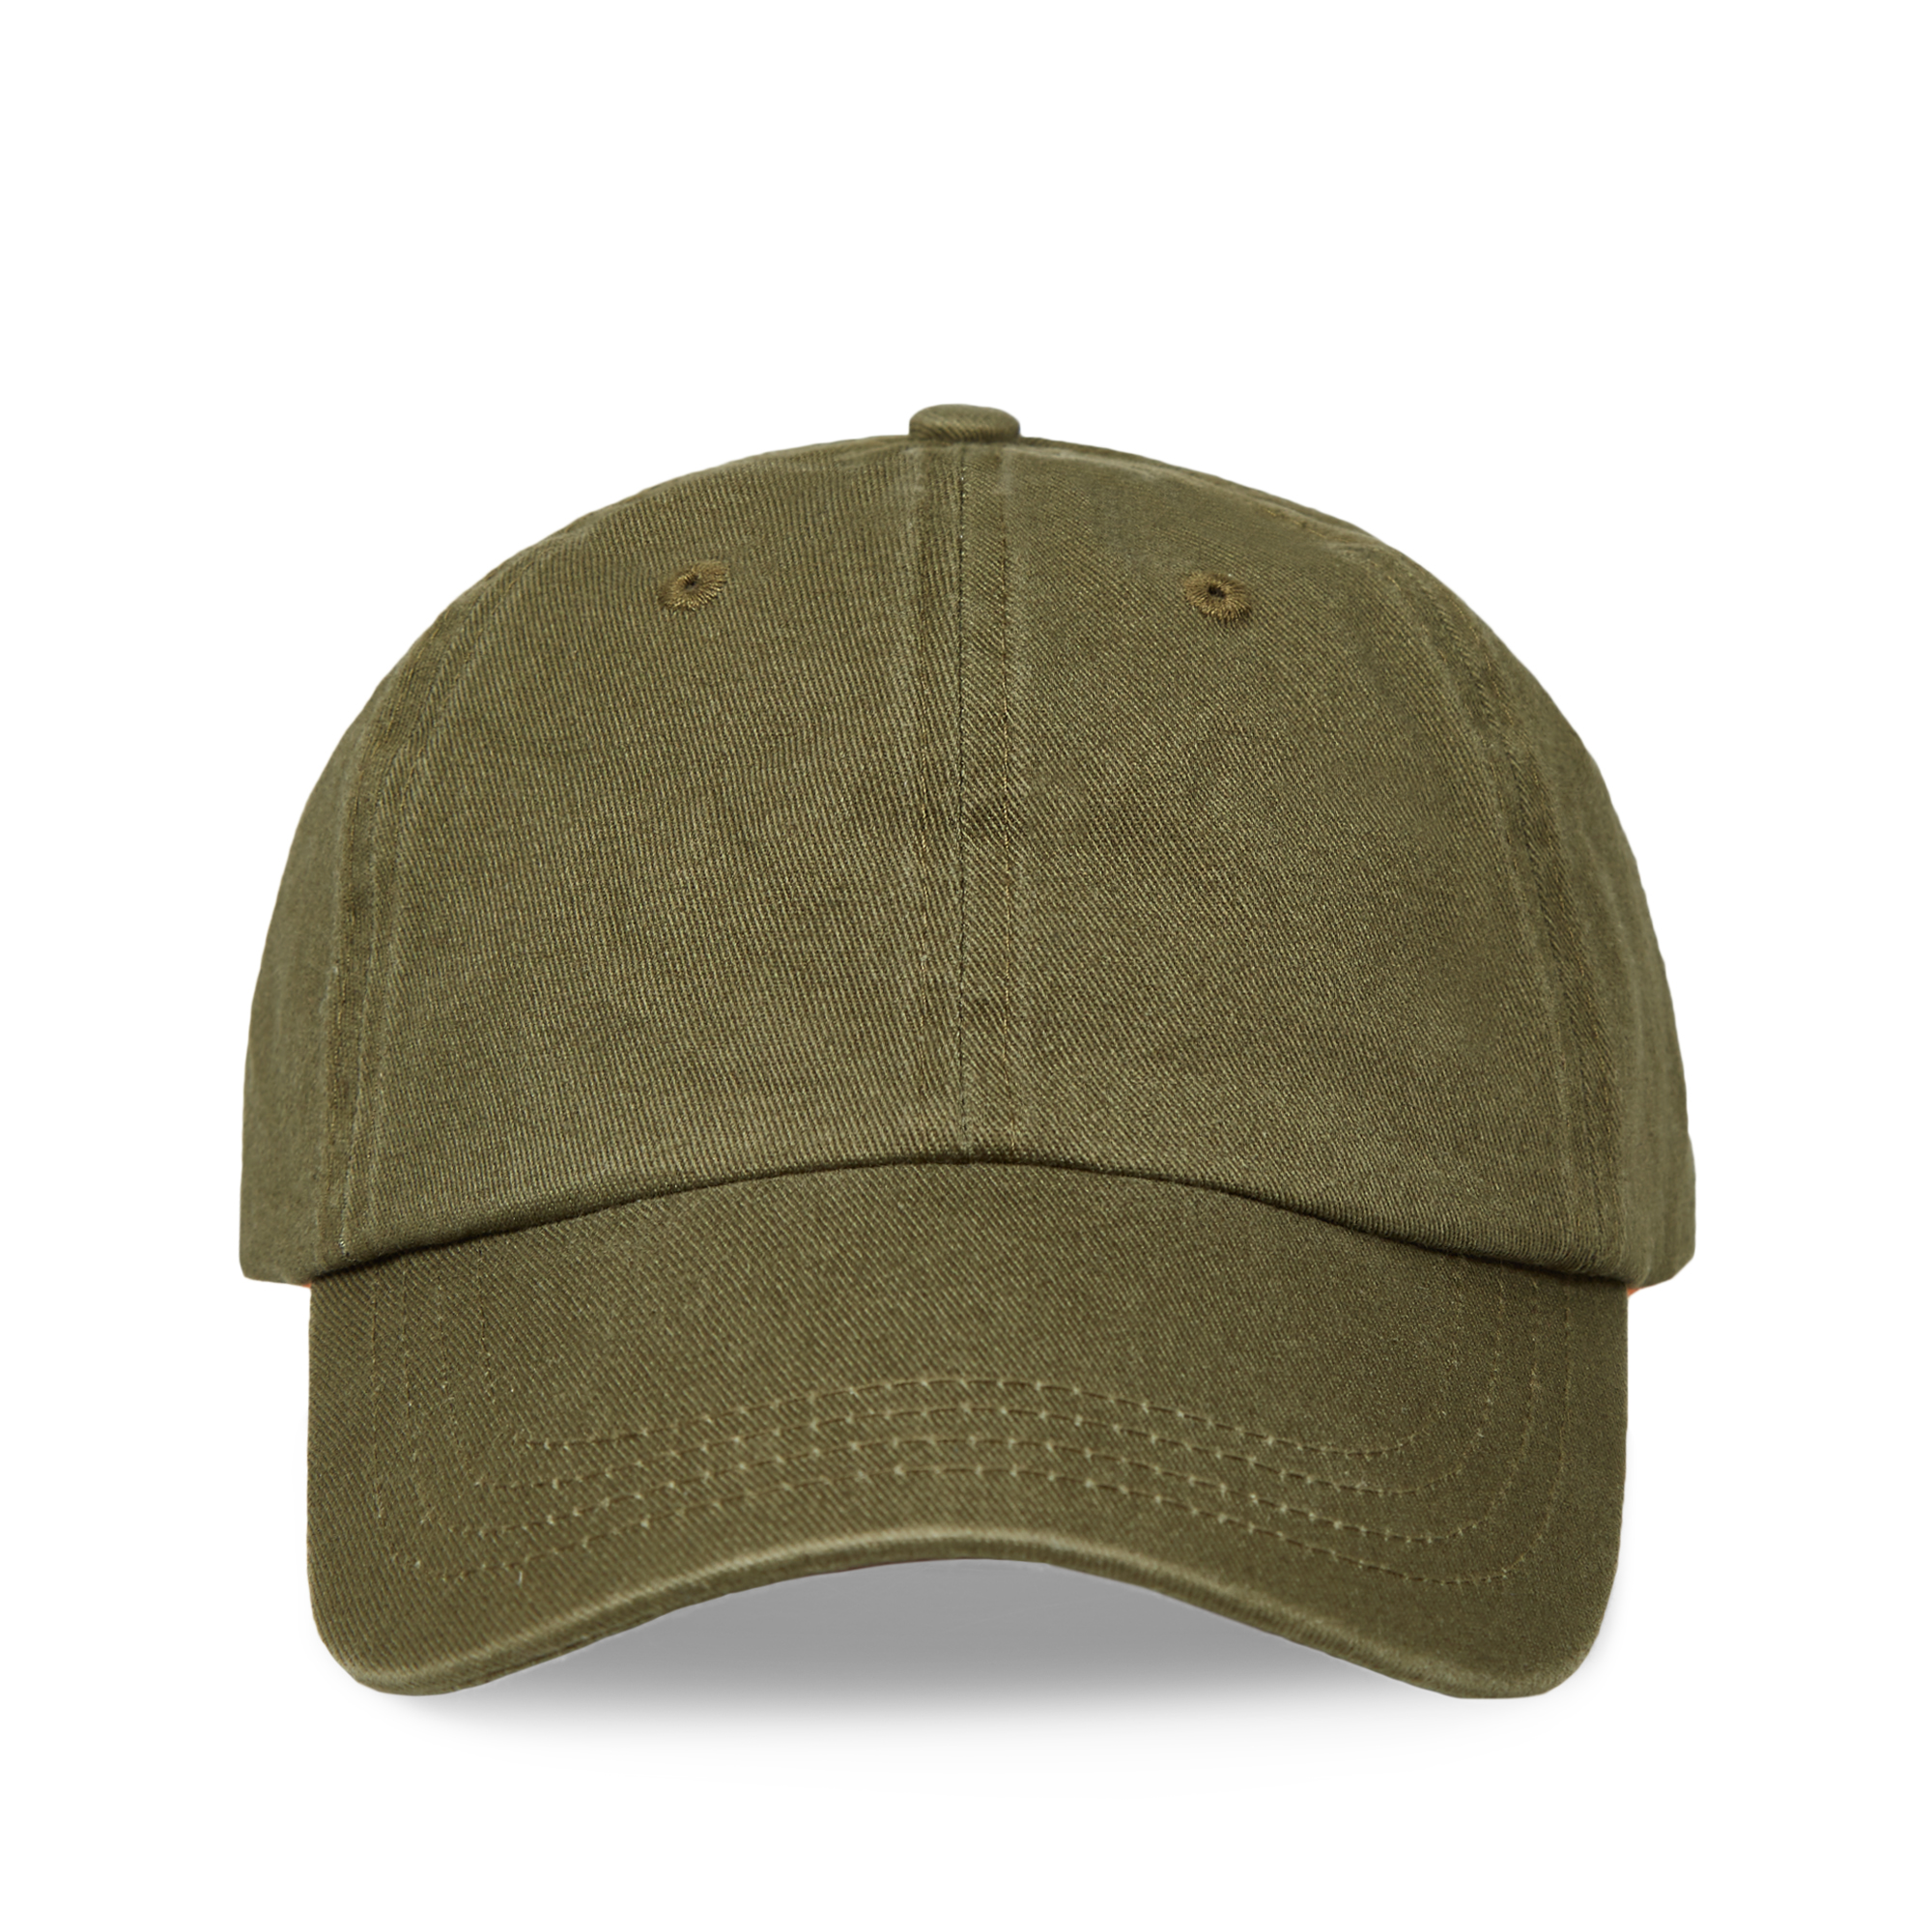 ea1f3315b Find every shop in the world selling baseball cap green at PricePi ...